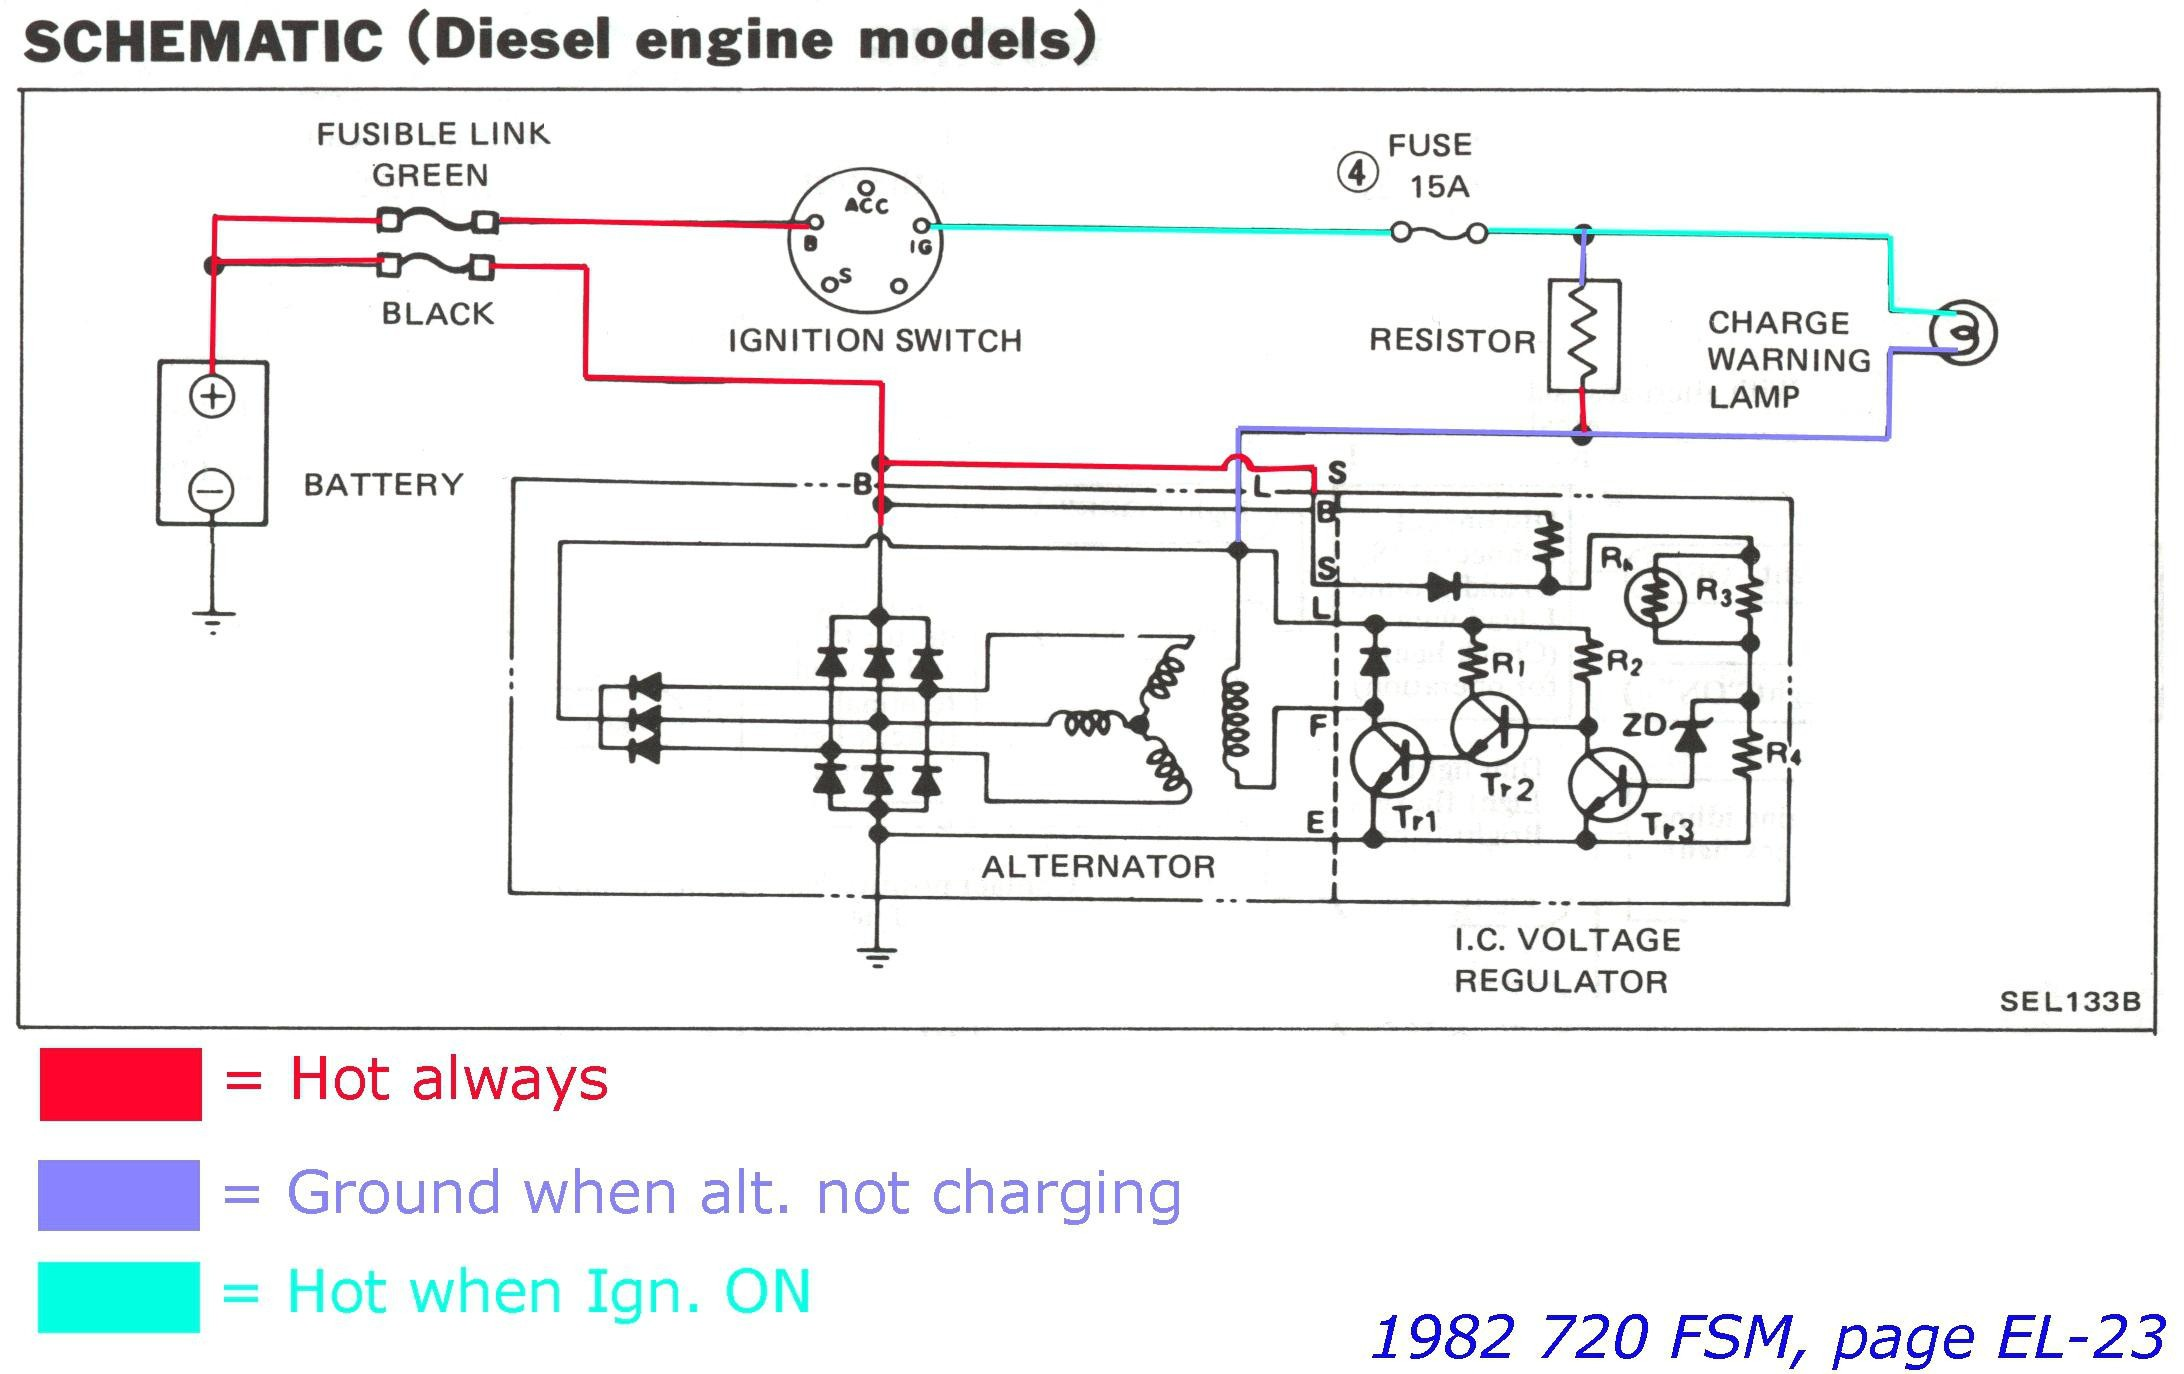 6A41 John Deere L100 Wiring Diagram | Wiring Resources John Deere Wiring Schematics on john deere diagnostic codes, john deere parts diagrams, john deere radio wiring diagram, john deere ignition switch wiring, john deere parts specifications, john deere solenoid wiring, john deere solenoid schematics, john deere maintenance schedule,